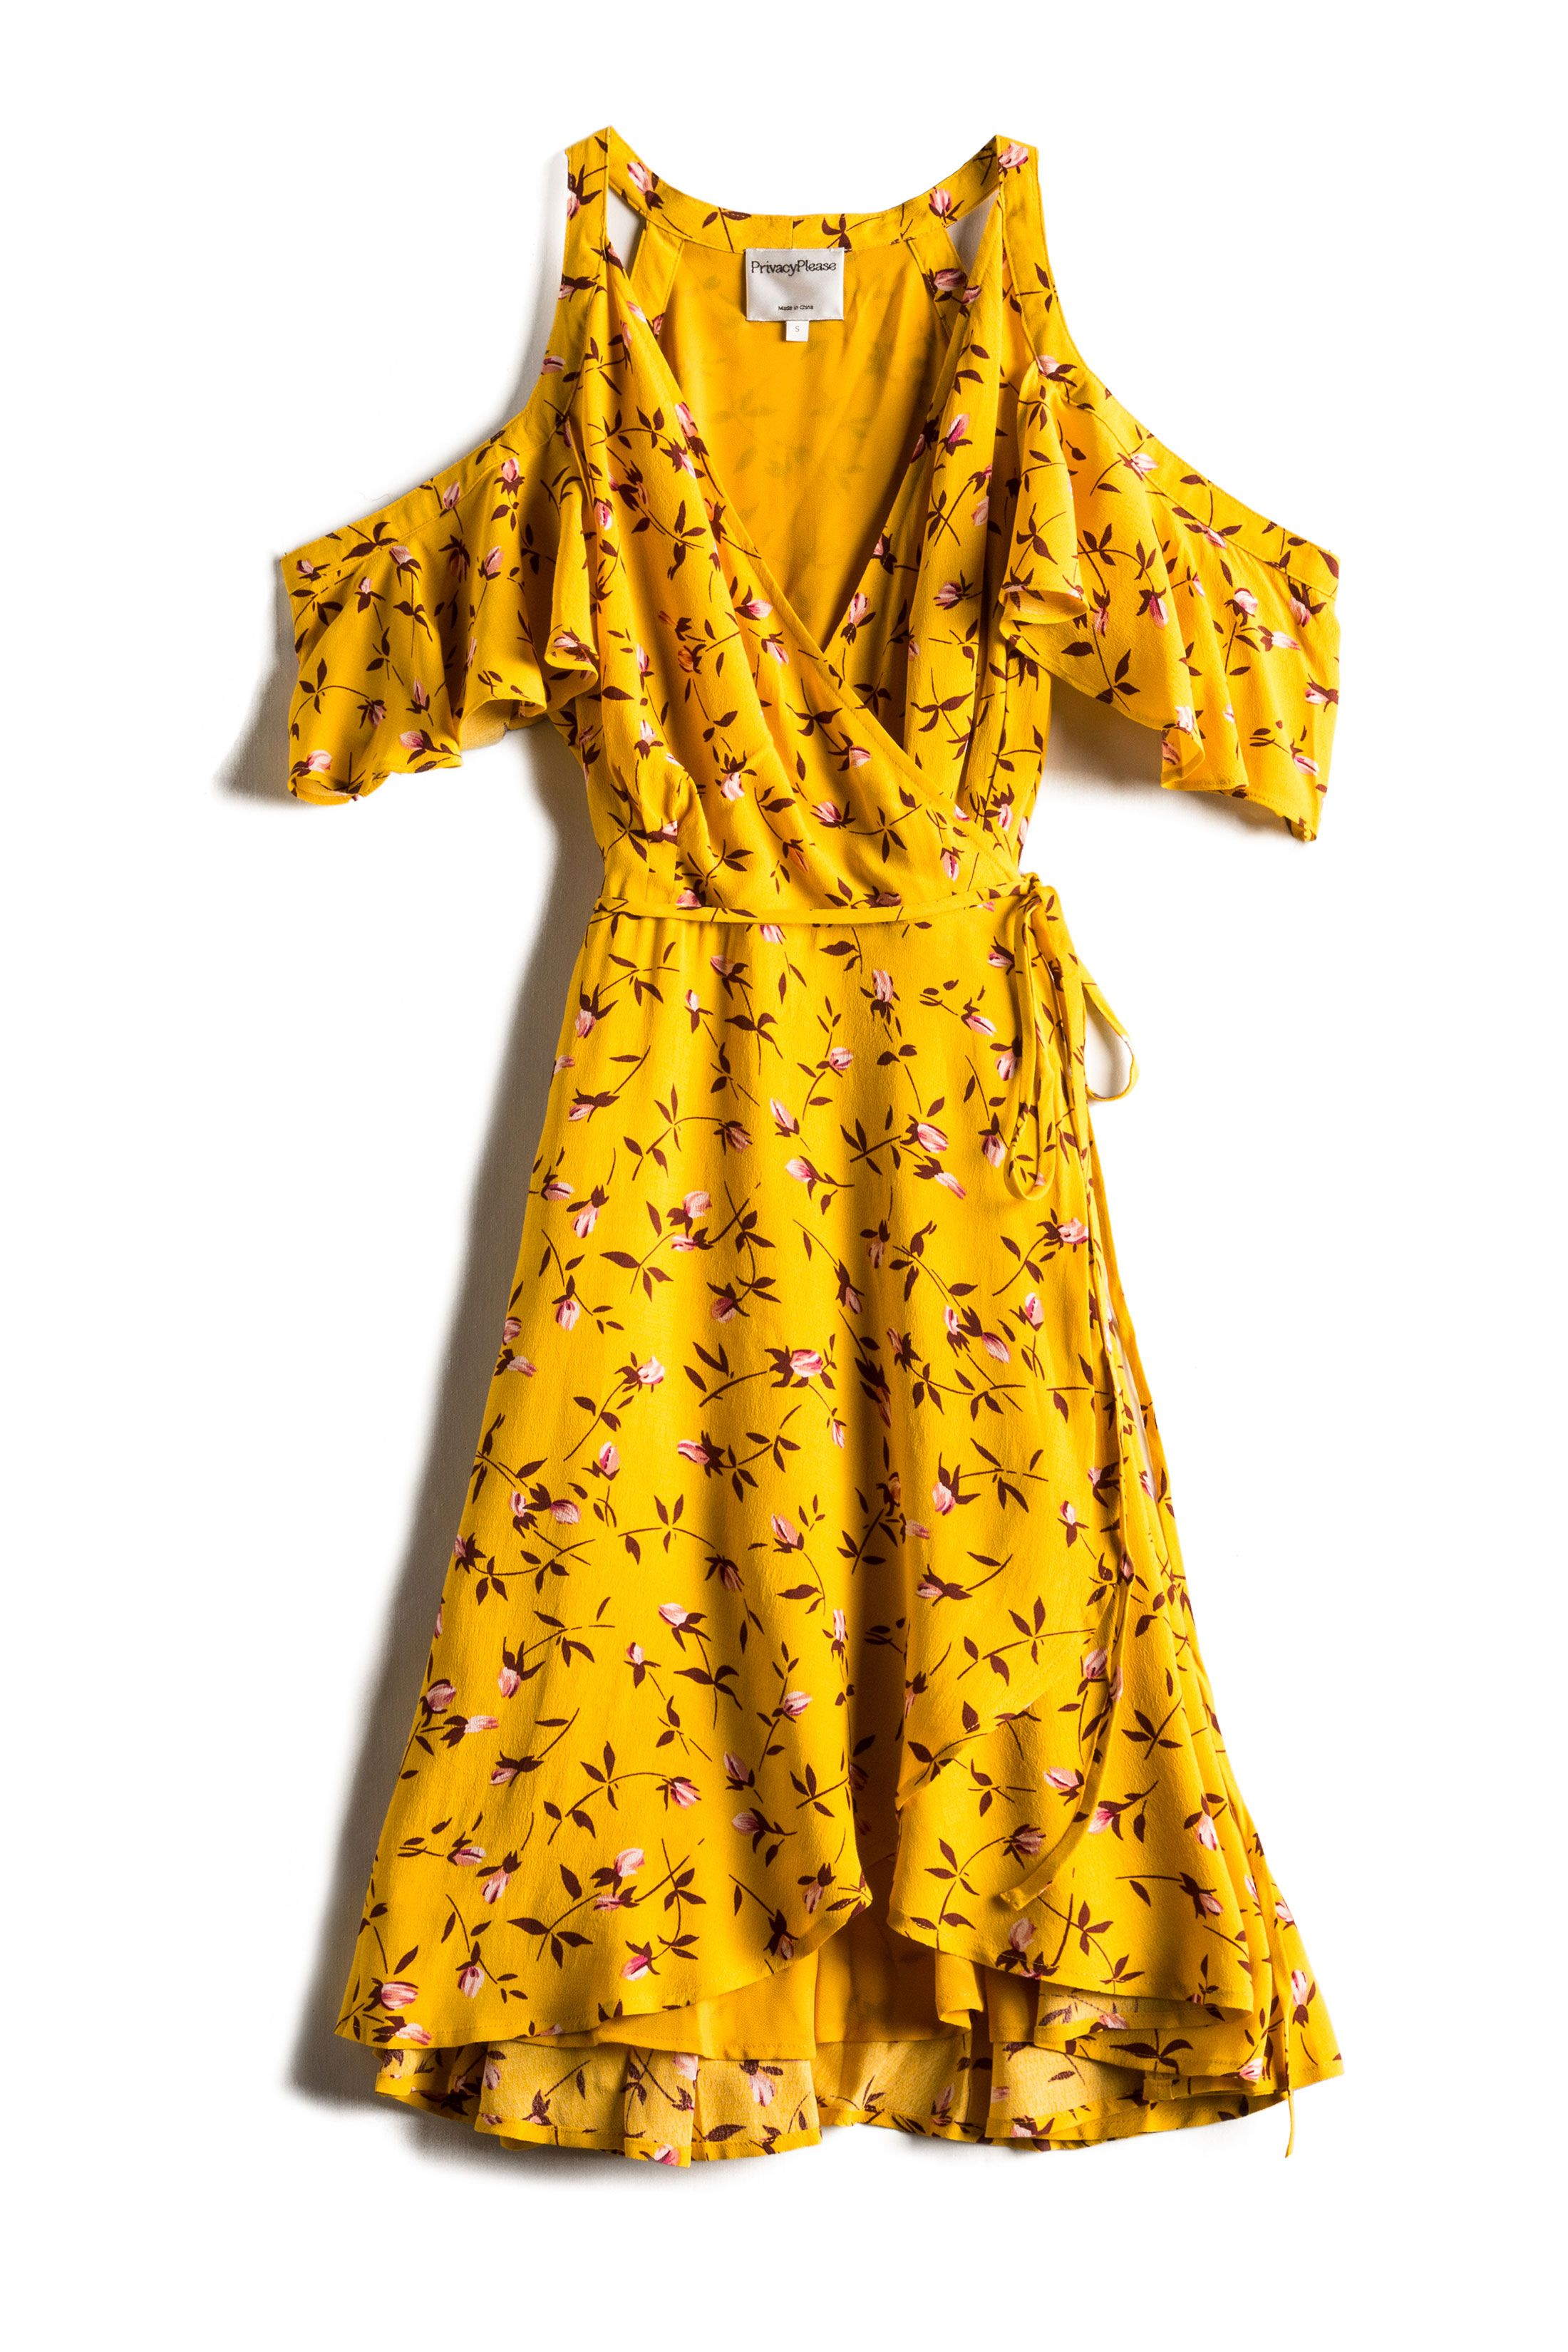 "<p>A sunny hue is the perfect backdrop for a scattering of flowers.</p><p><em data-redactor-tag=""em"" data-verified=""redactor"">Privacy Please x Revolve Dress, $178; </em><a href=""http://www.revolve.com/privacy-please-x-revolve-delta-dress-in-mustard/dp/PRIP-WD216/?d=F&sectionURL=Direct+Hit"" target=""_blank"" data-tracking-id=""recirc-text-link""><em data-redactor-tag=""em"" data-verified=""redactor"">revolve.com</em></a></p>"